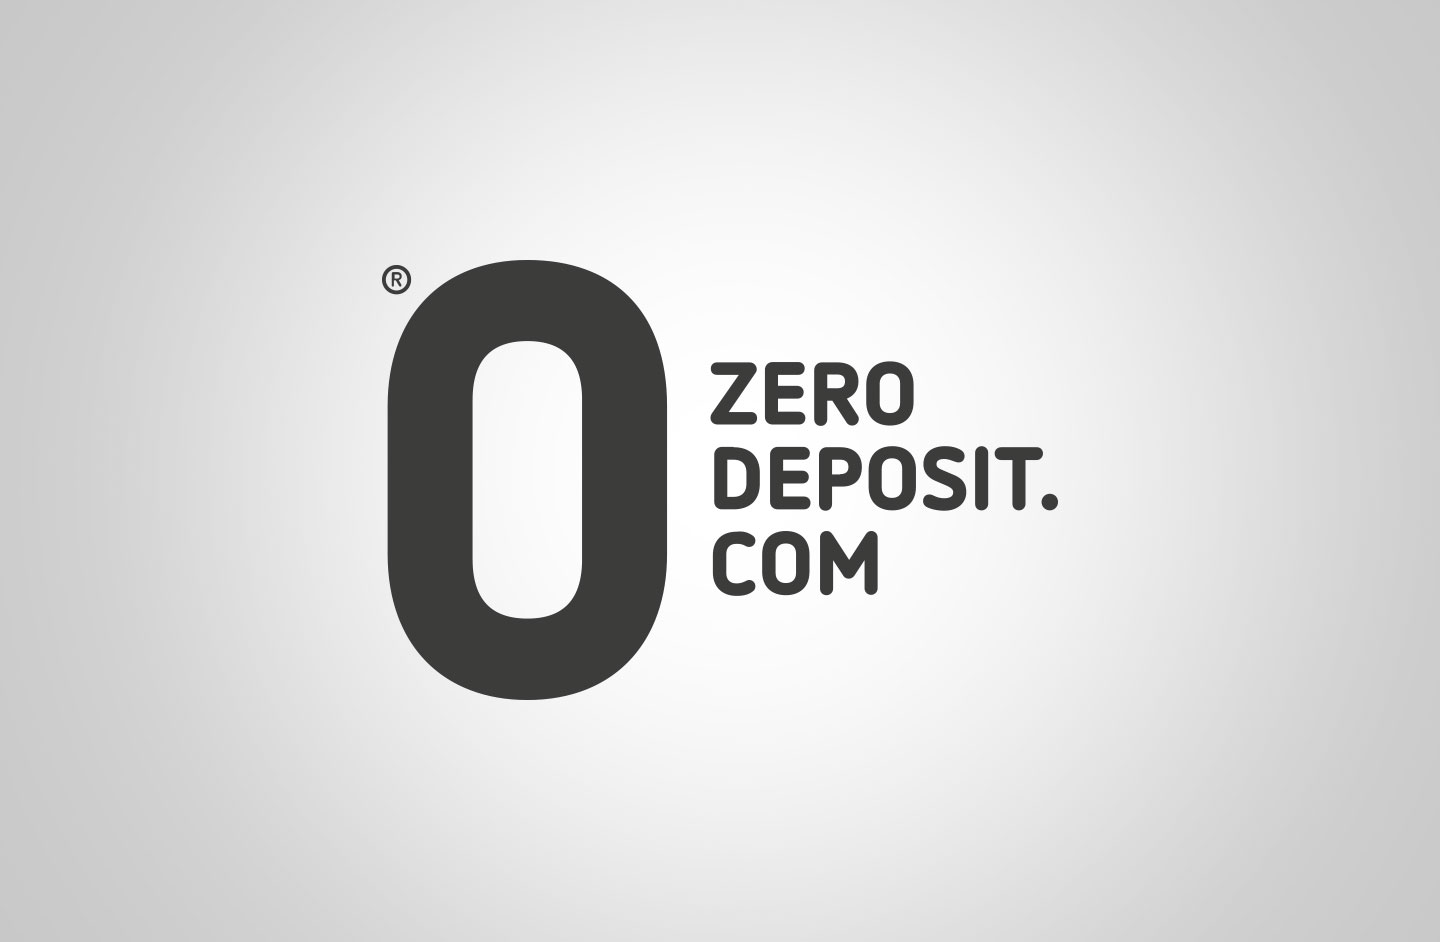 How to Get a Zero Deposit with a Upad Tenancy